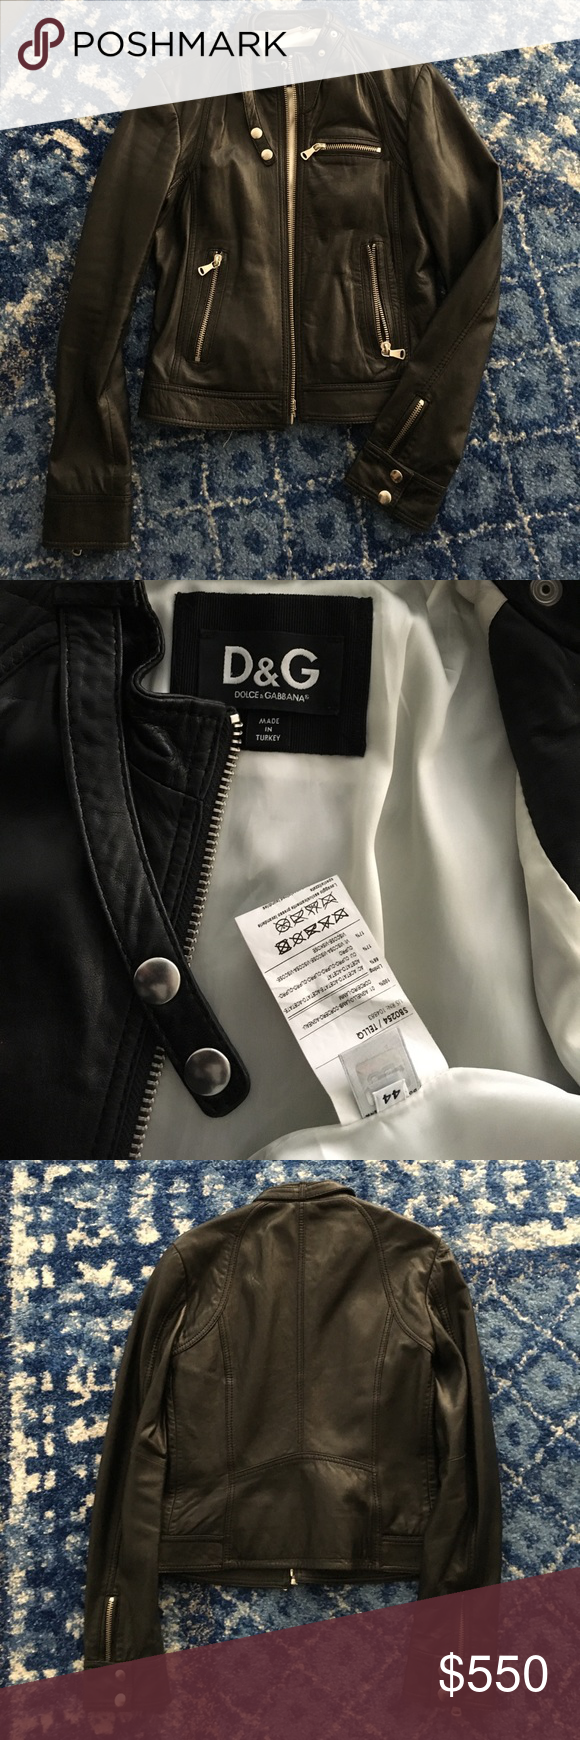 D&G dolce and gabbana leather biker jacket Dolce and